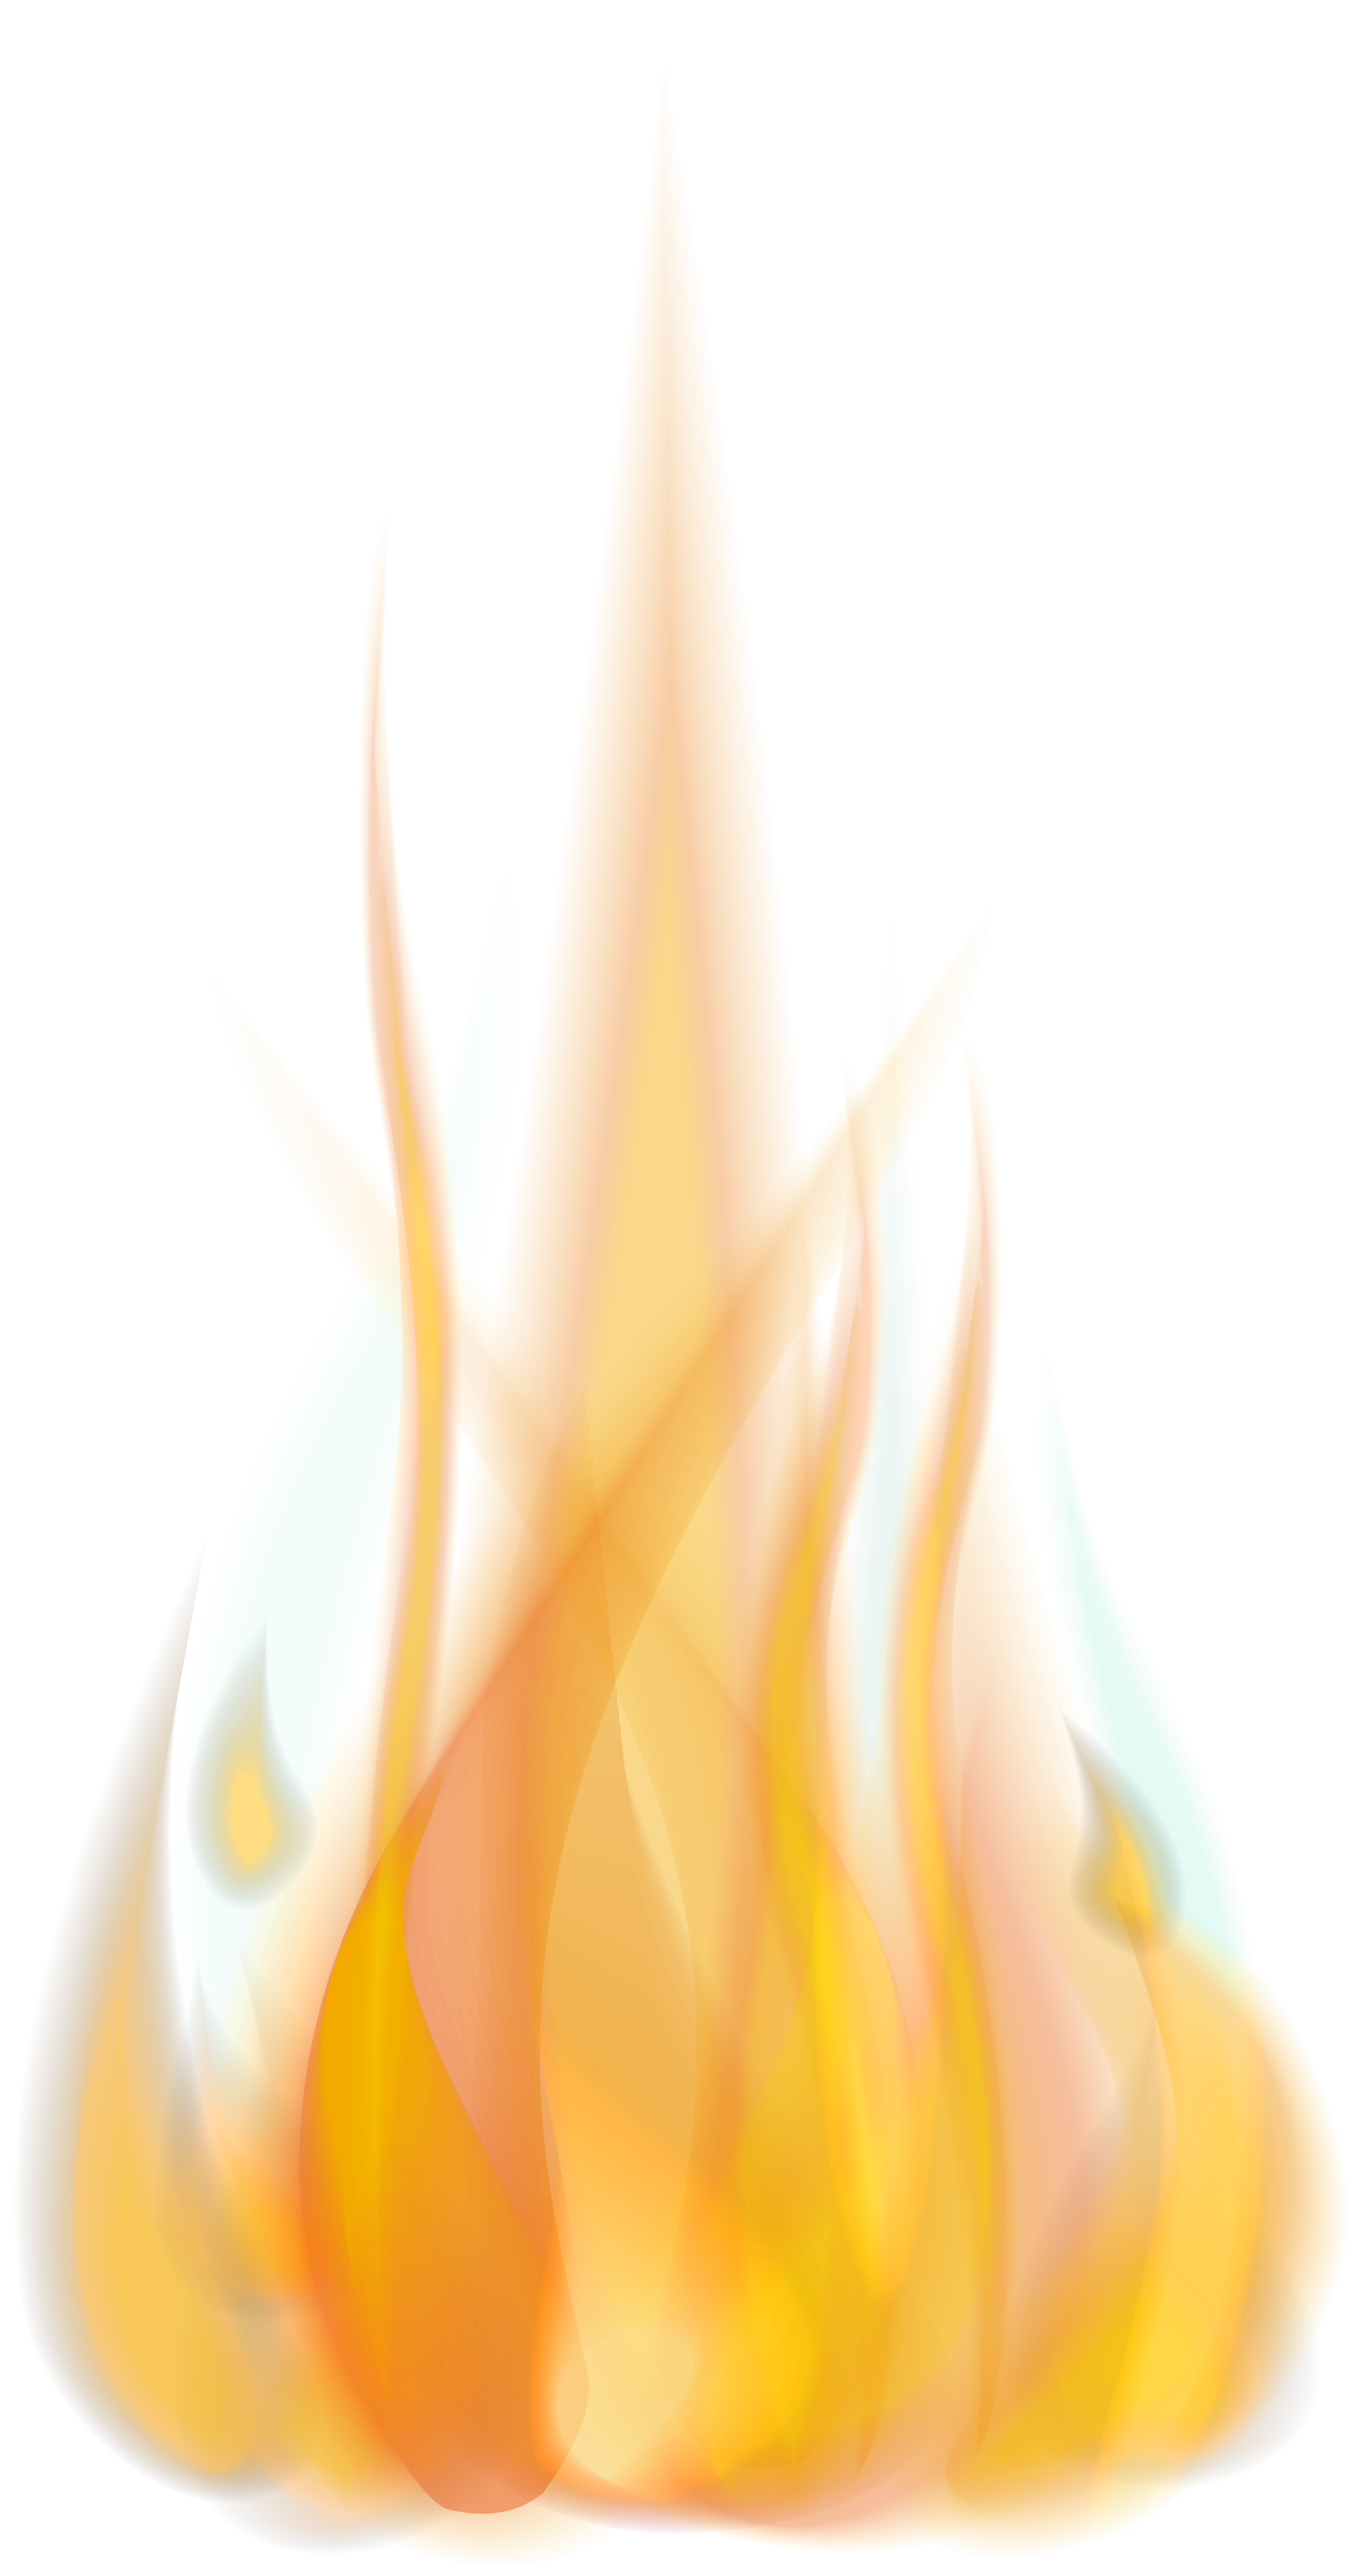 Flame art png. Fire clip image gallery